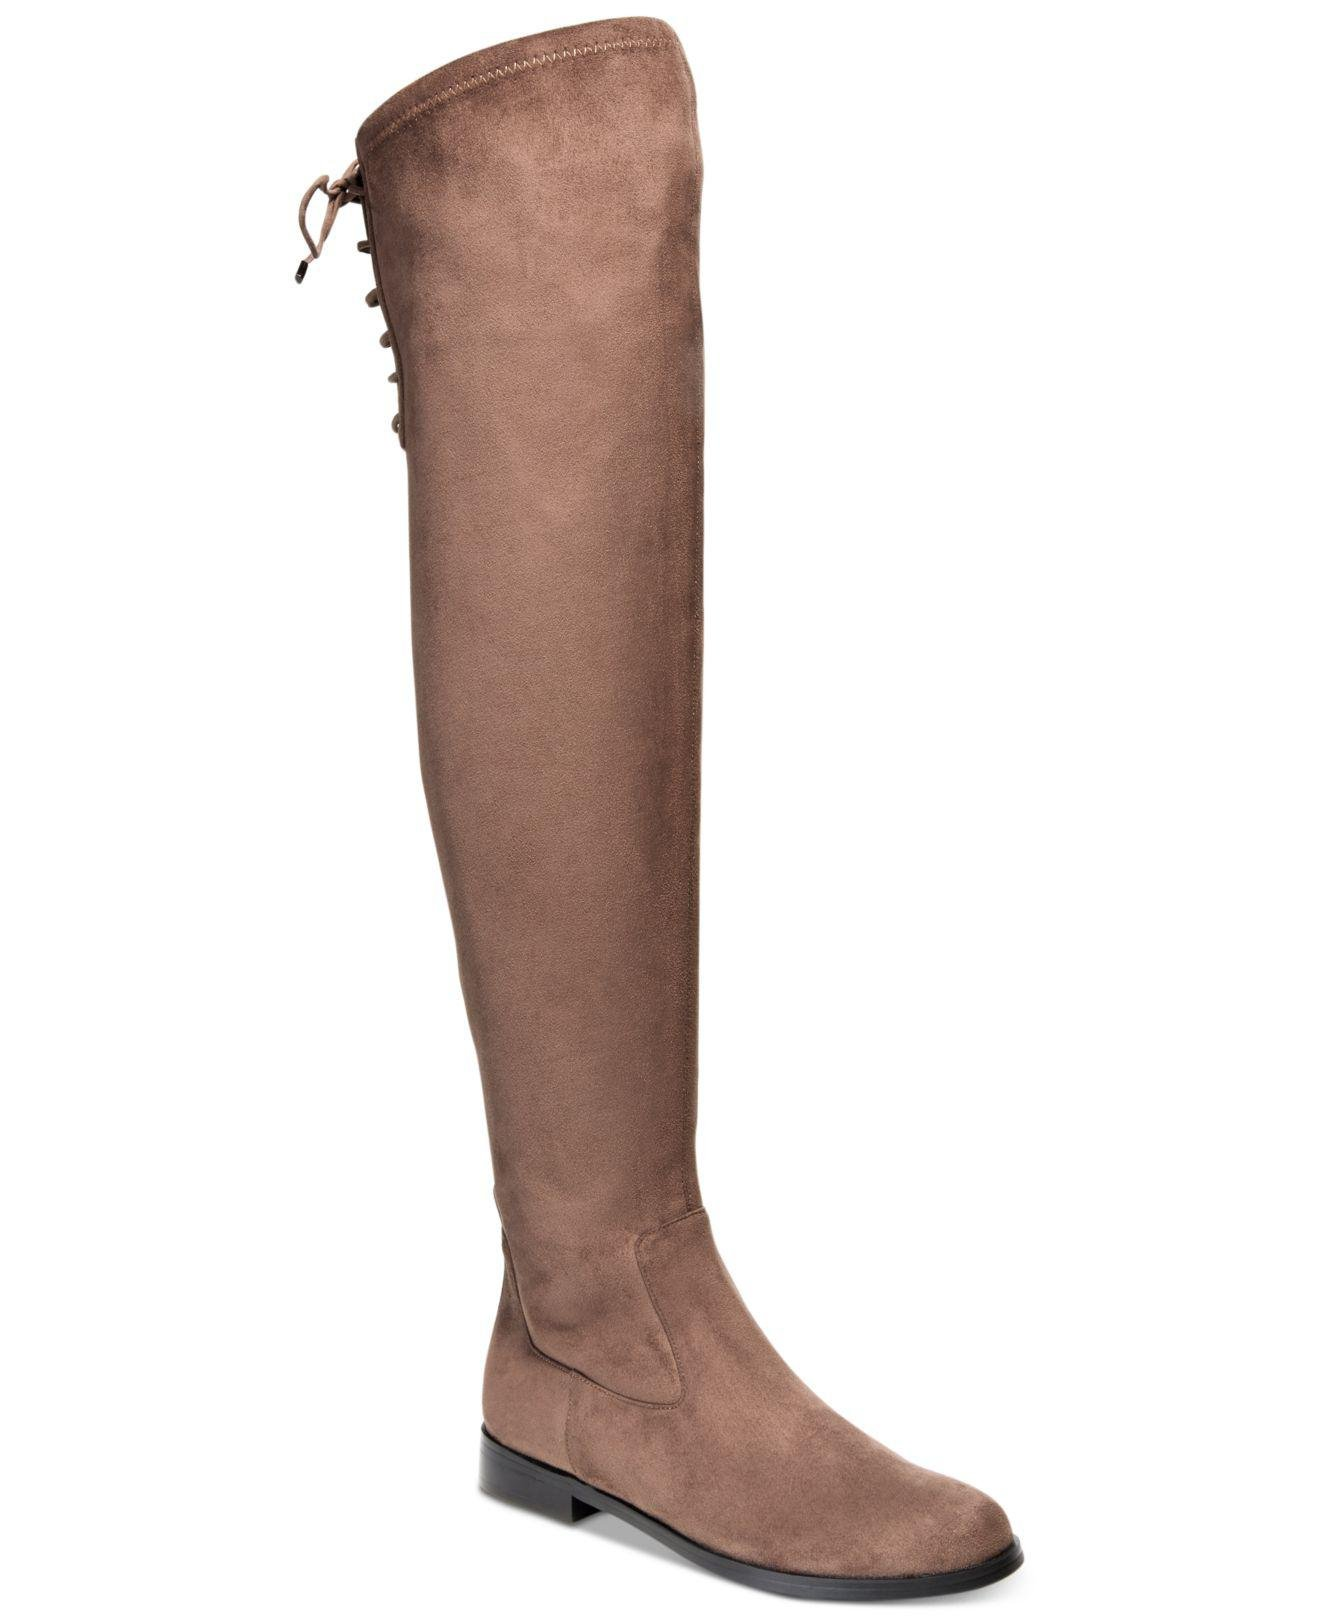 Cheap Price Low Shipping Fee Wind Free Over The Knee Boot Kenneth Cole Reaction Extremely Sale Online bO6rnFK